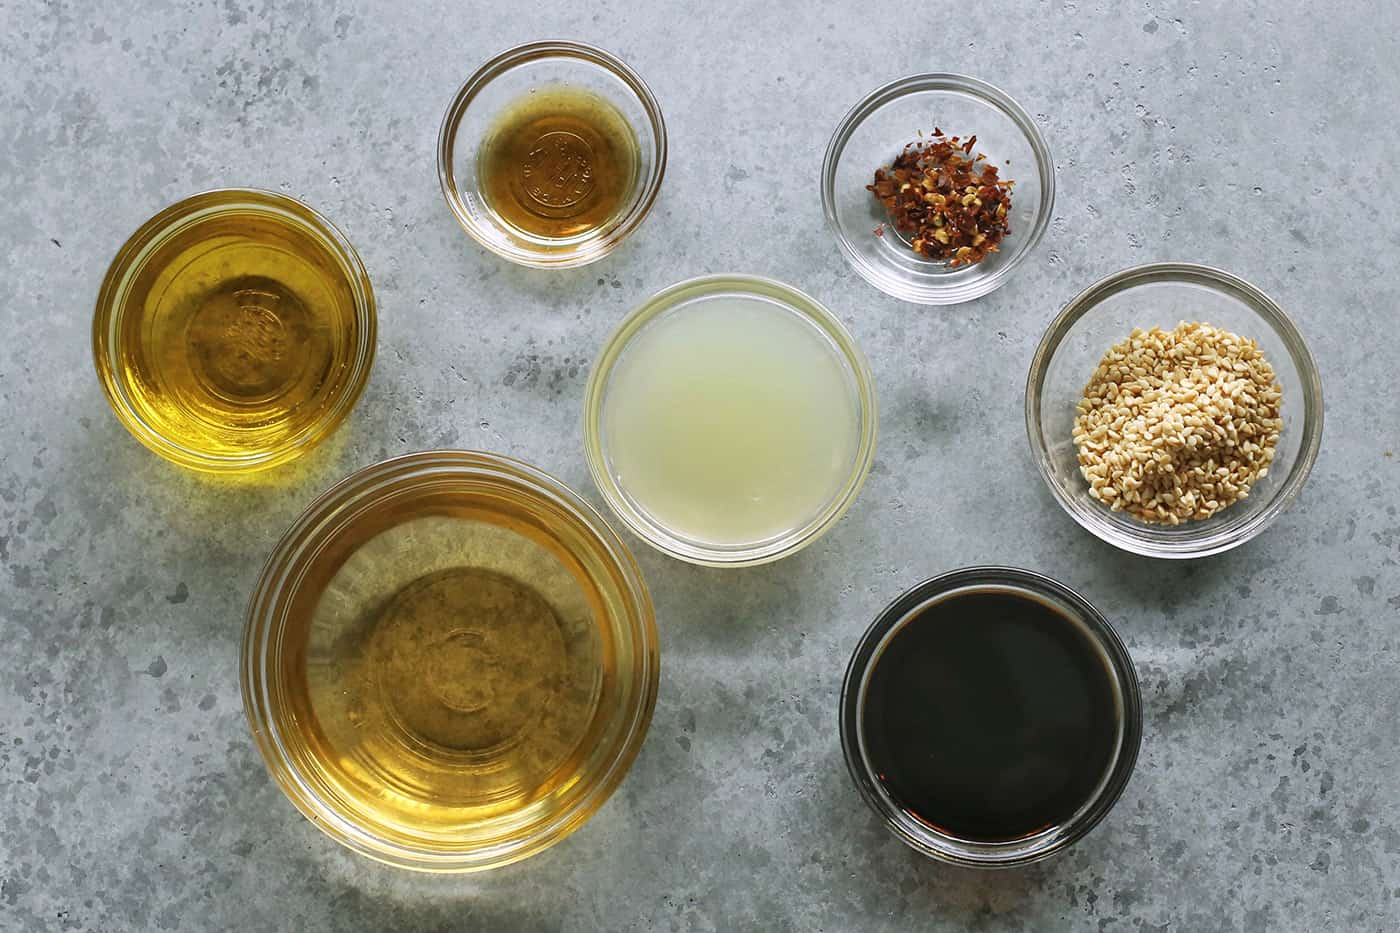 ingredients to make the salad dressing, in separate clear bowls